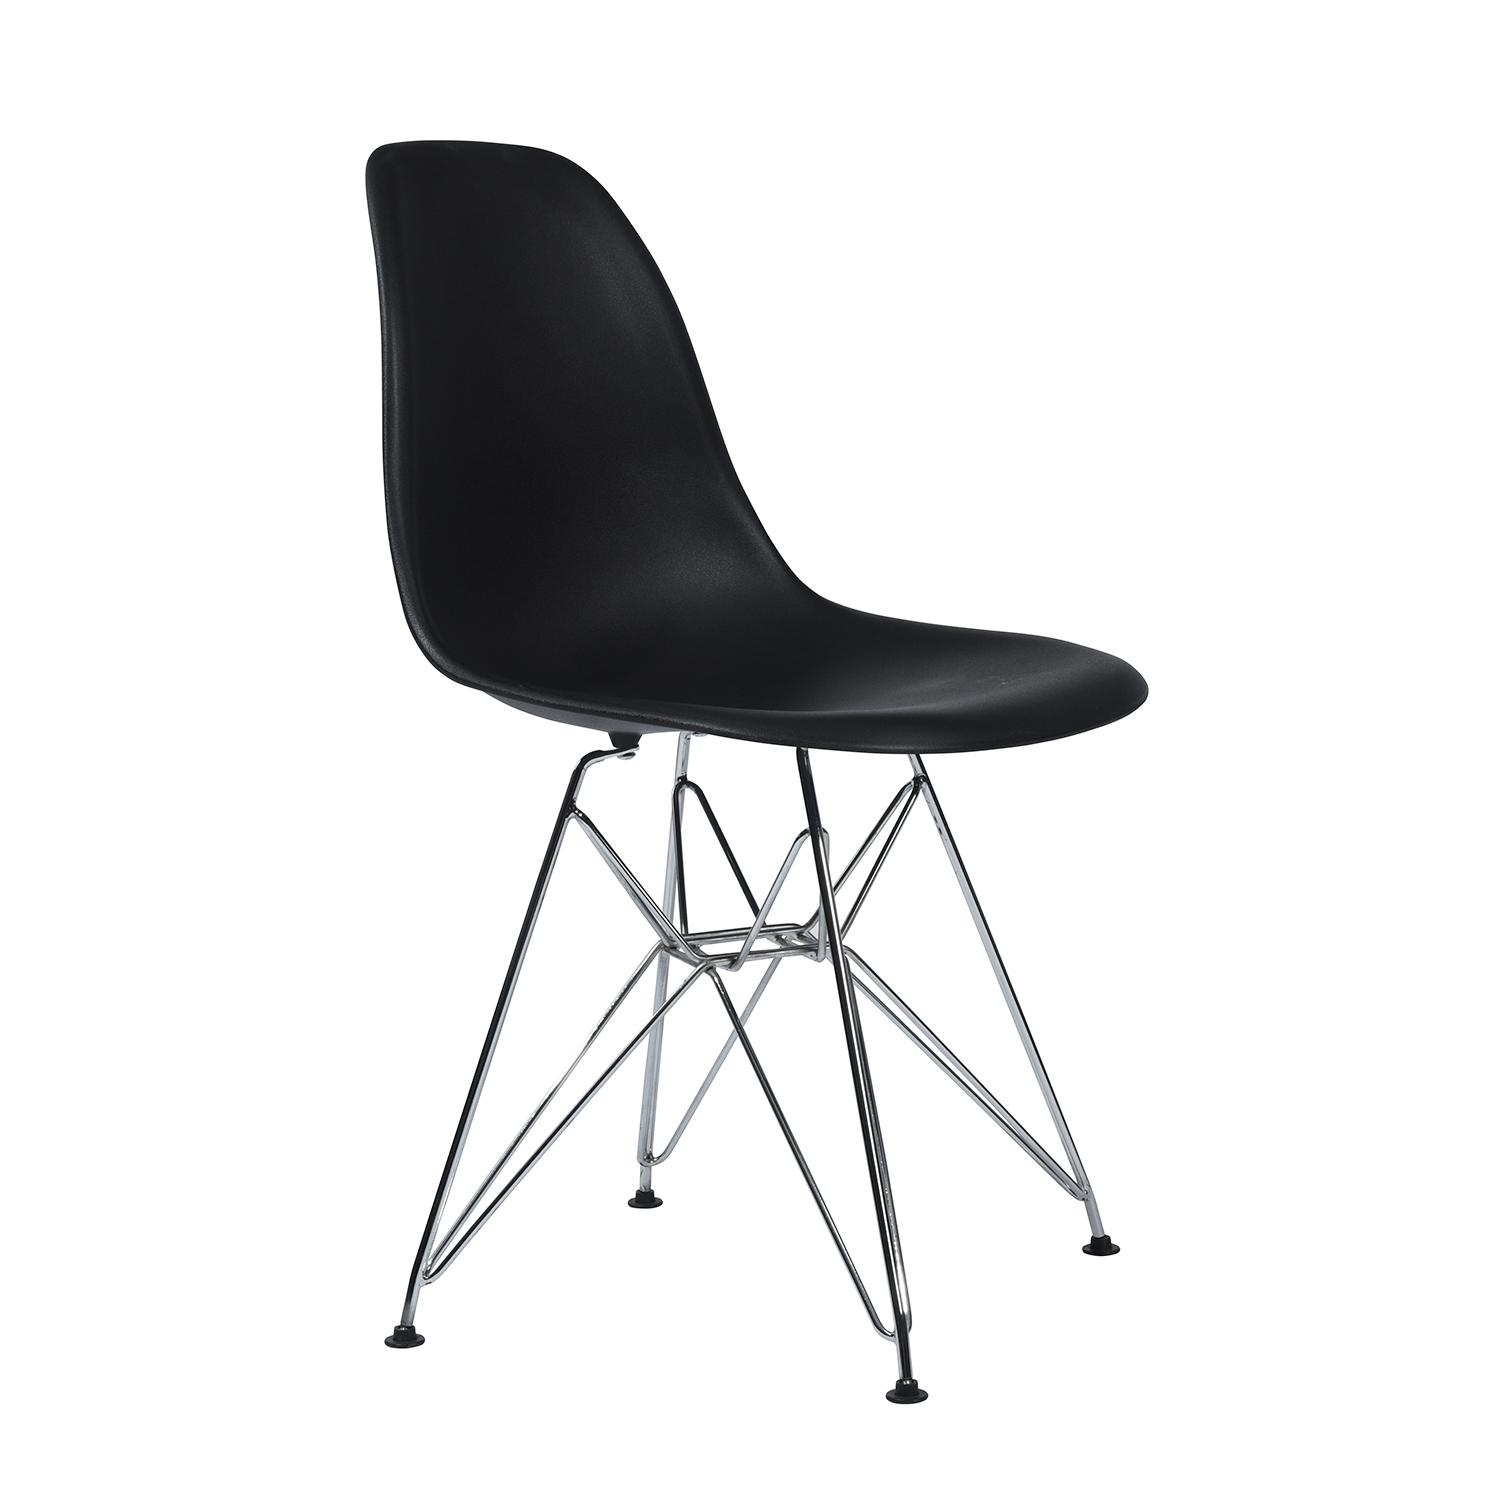 EGGREE Modern Rico Dining Chairs, Kitchen Chair With Metal Feet, Office Room Chair With Solid Frame- Black